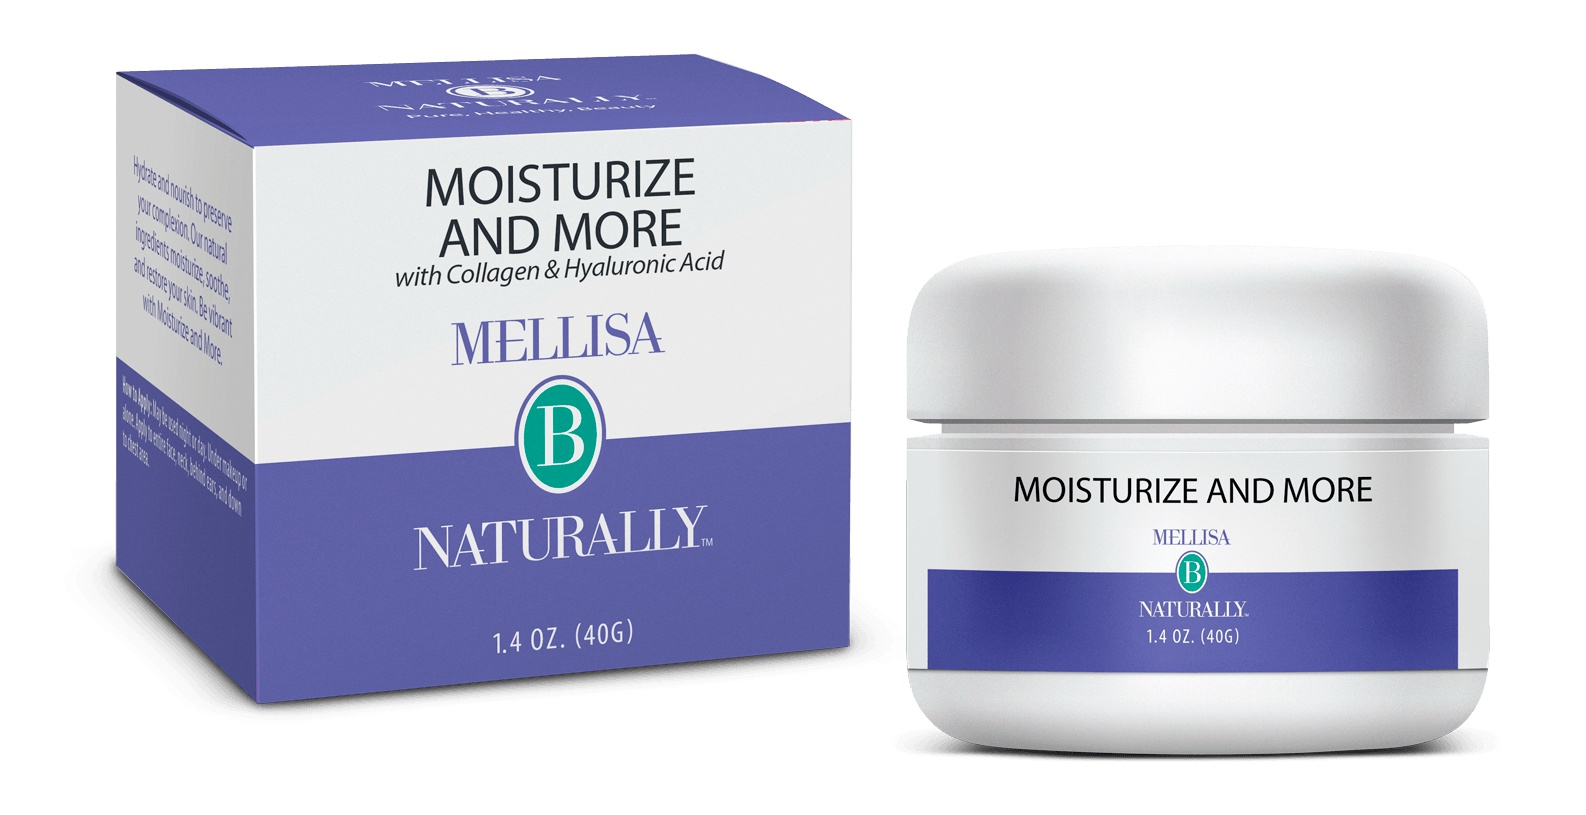 Mellisa B Naturally Moisturize And More With Collagen & Hyaluronic Acid